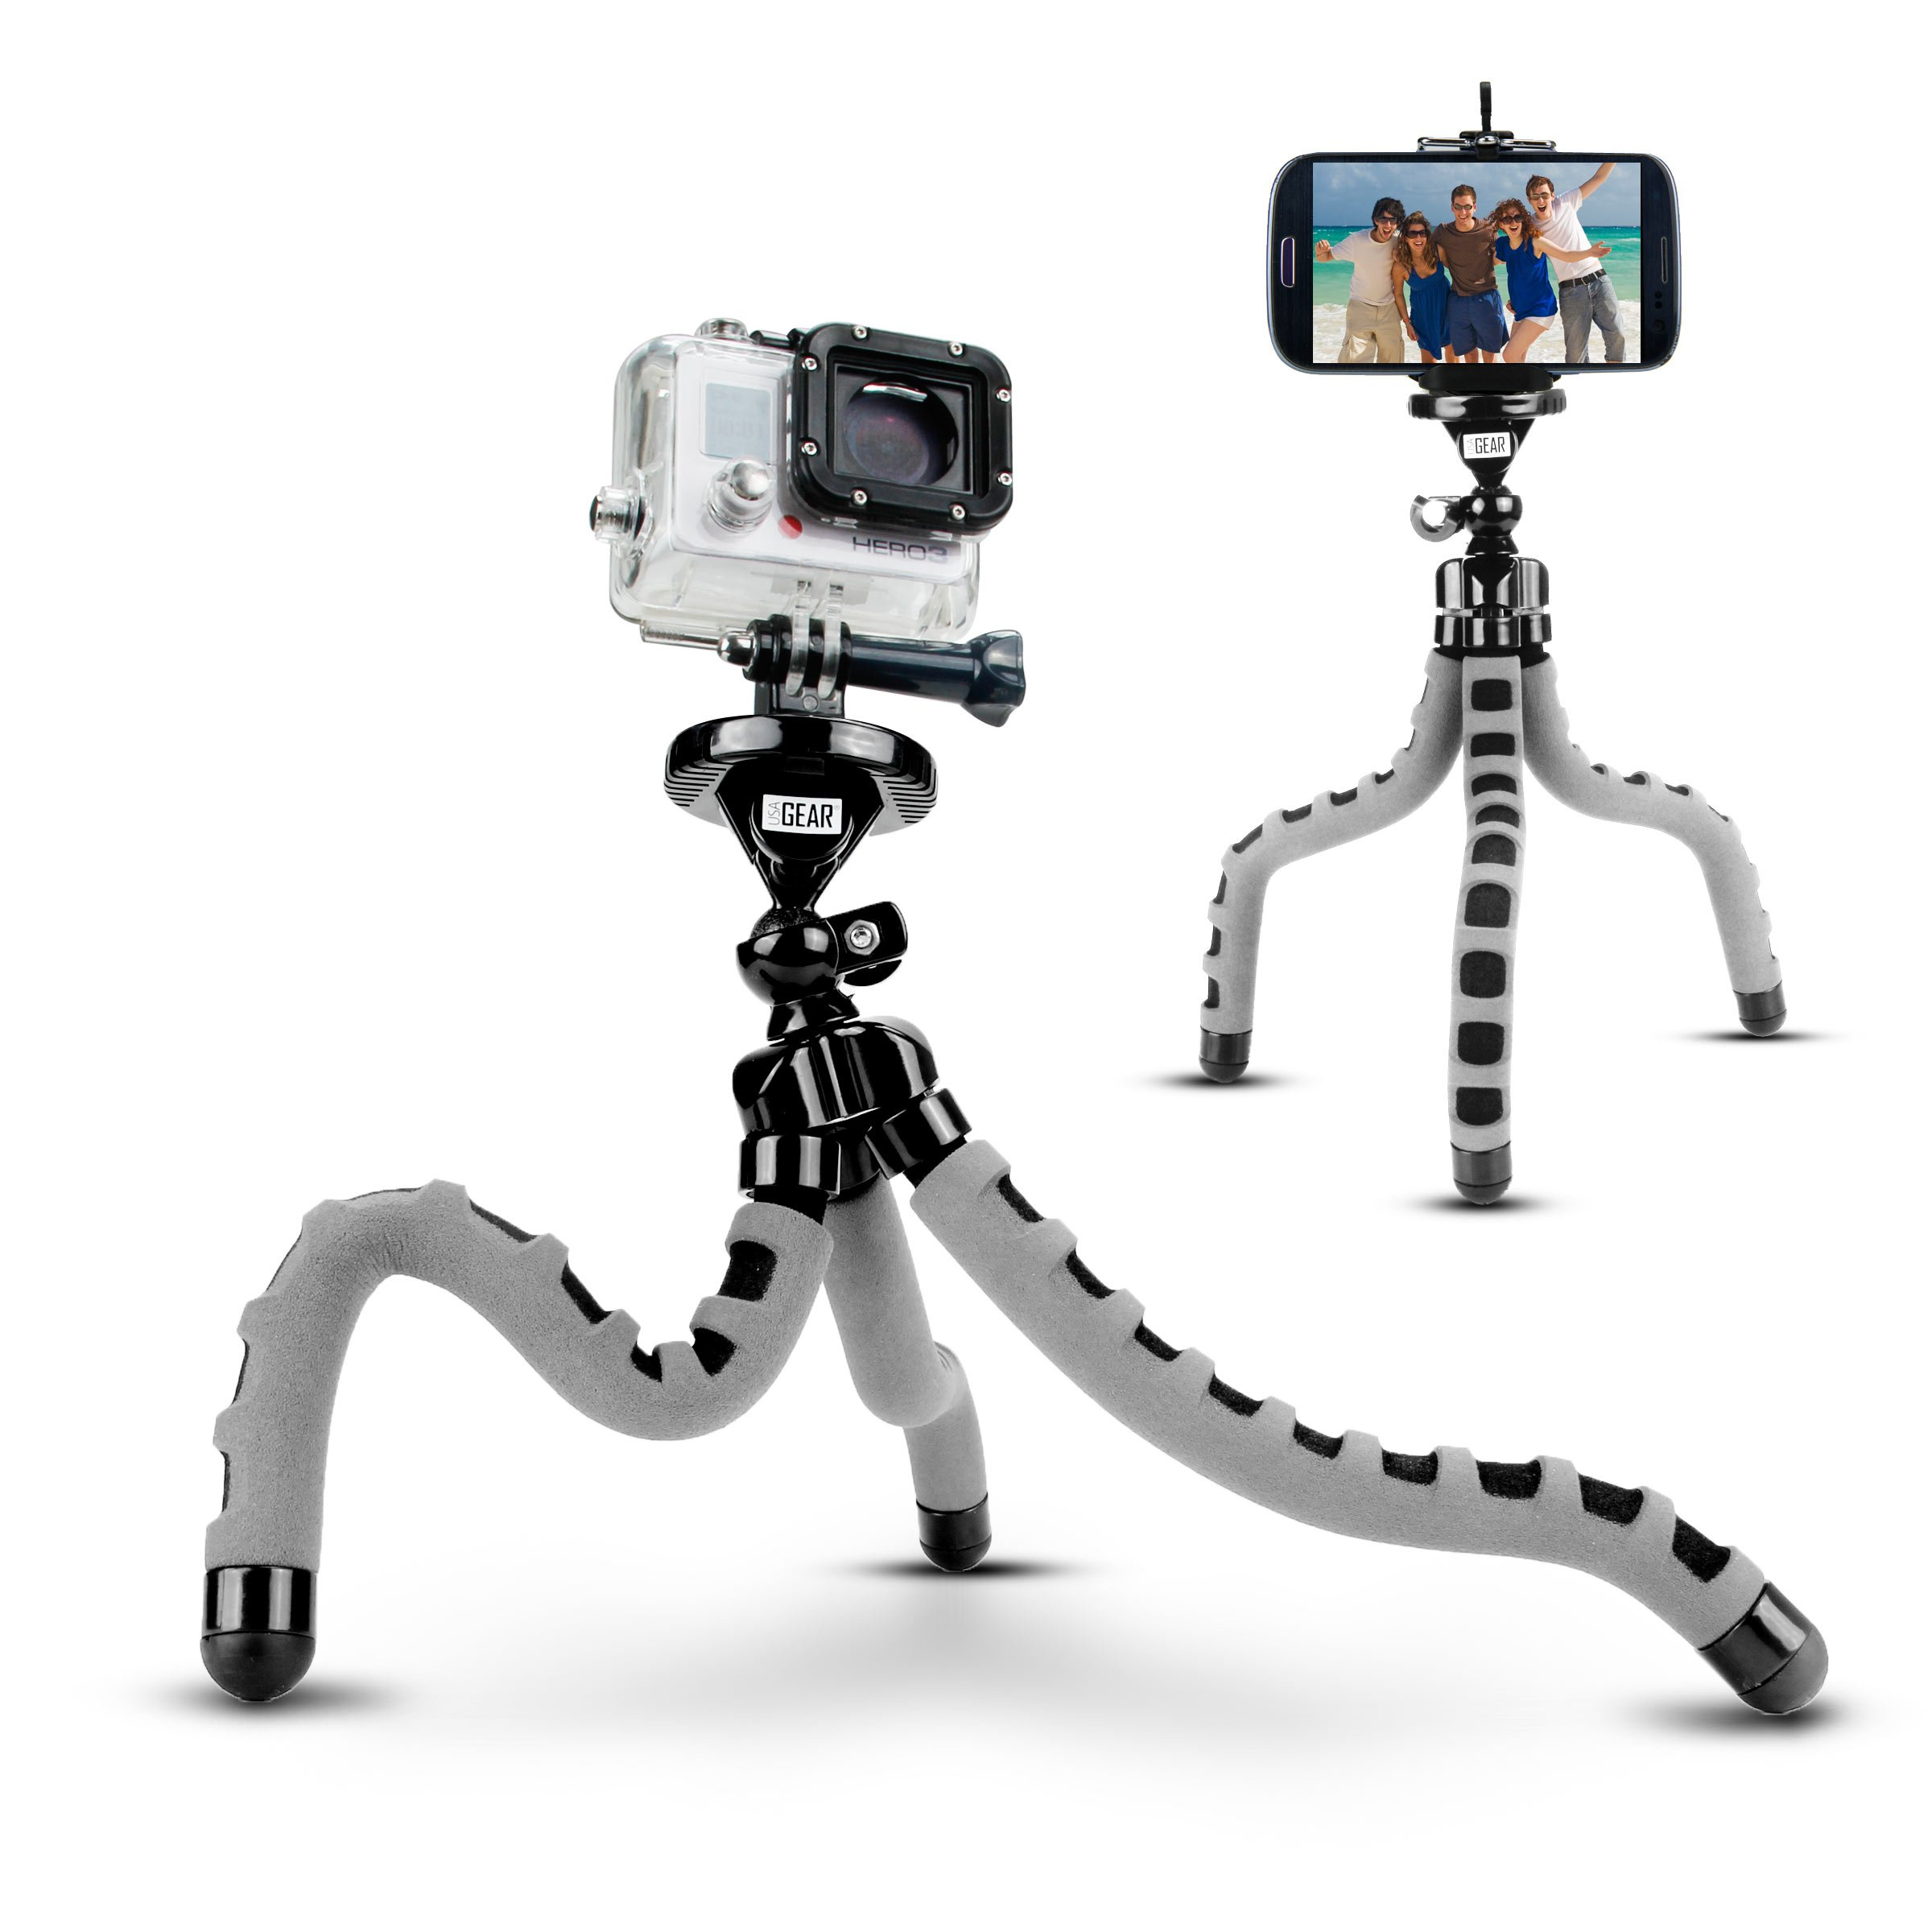 Action Cam Flexible Tripod Mount Stand with Bendable Wrapping Legs by USA Gear - Works with Garmin VIRB Ultra 30, Vivitar, REMALI 4K Ultra HD Sports Action Camera & More